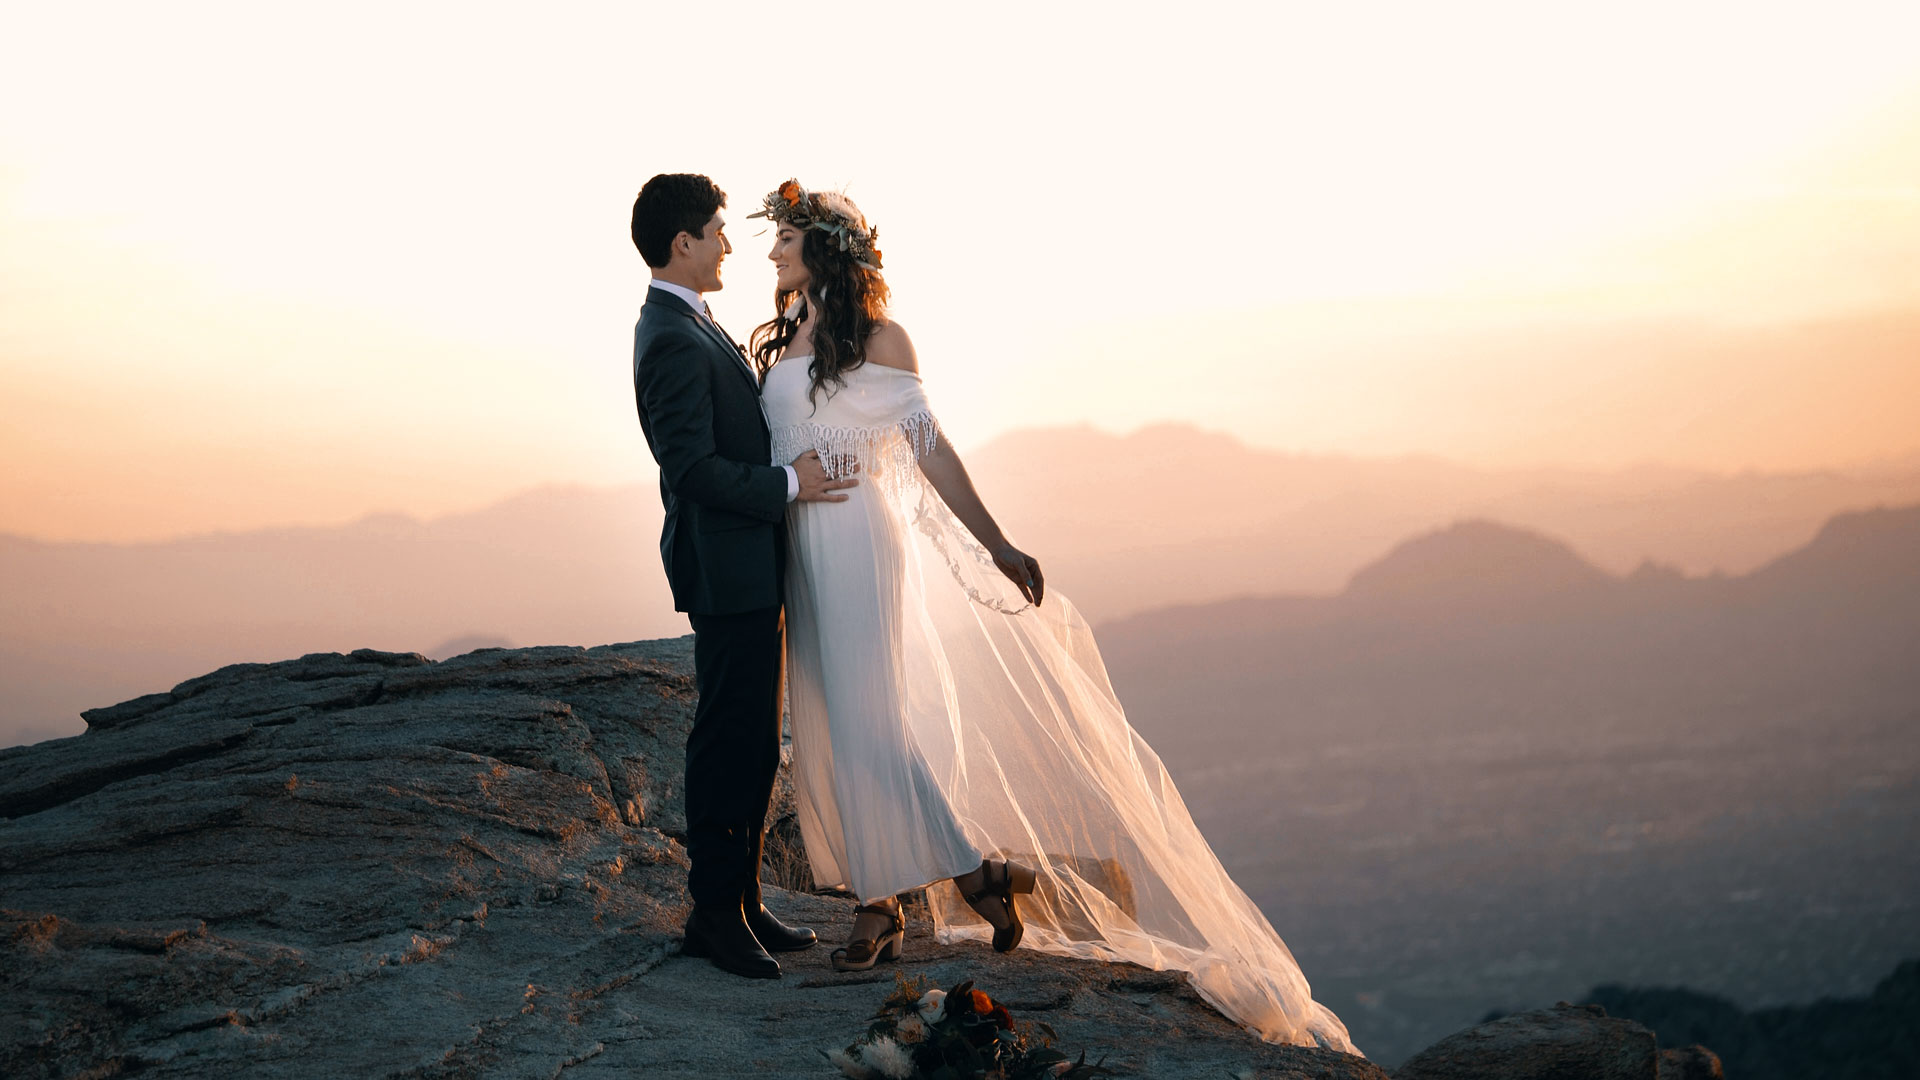 Chloe + Mo | Tucson, Arizona | Mount Lemmon